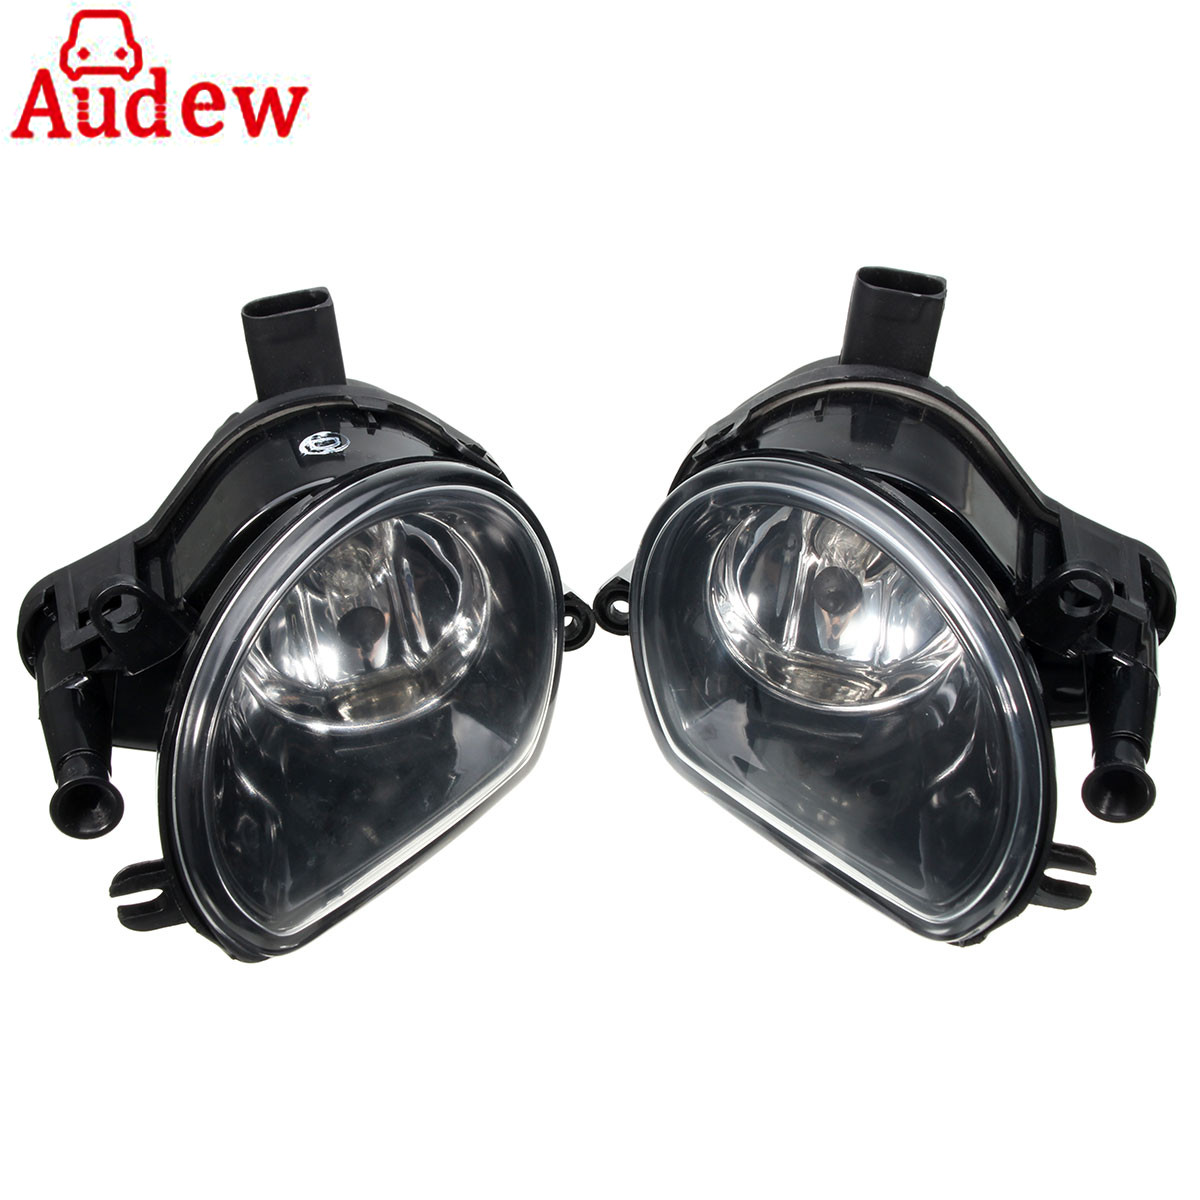 Pair Amber Fog Light Lamp Front Bumper Halogen Clean Fog Lamps Foglights For Audi Q7 07-09/A3 04-08 8P0941699A<br>